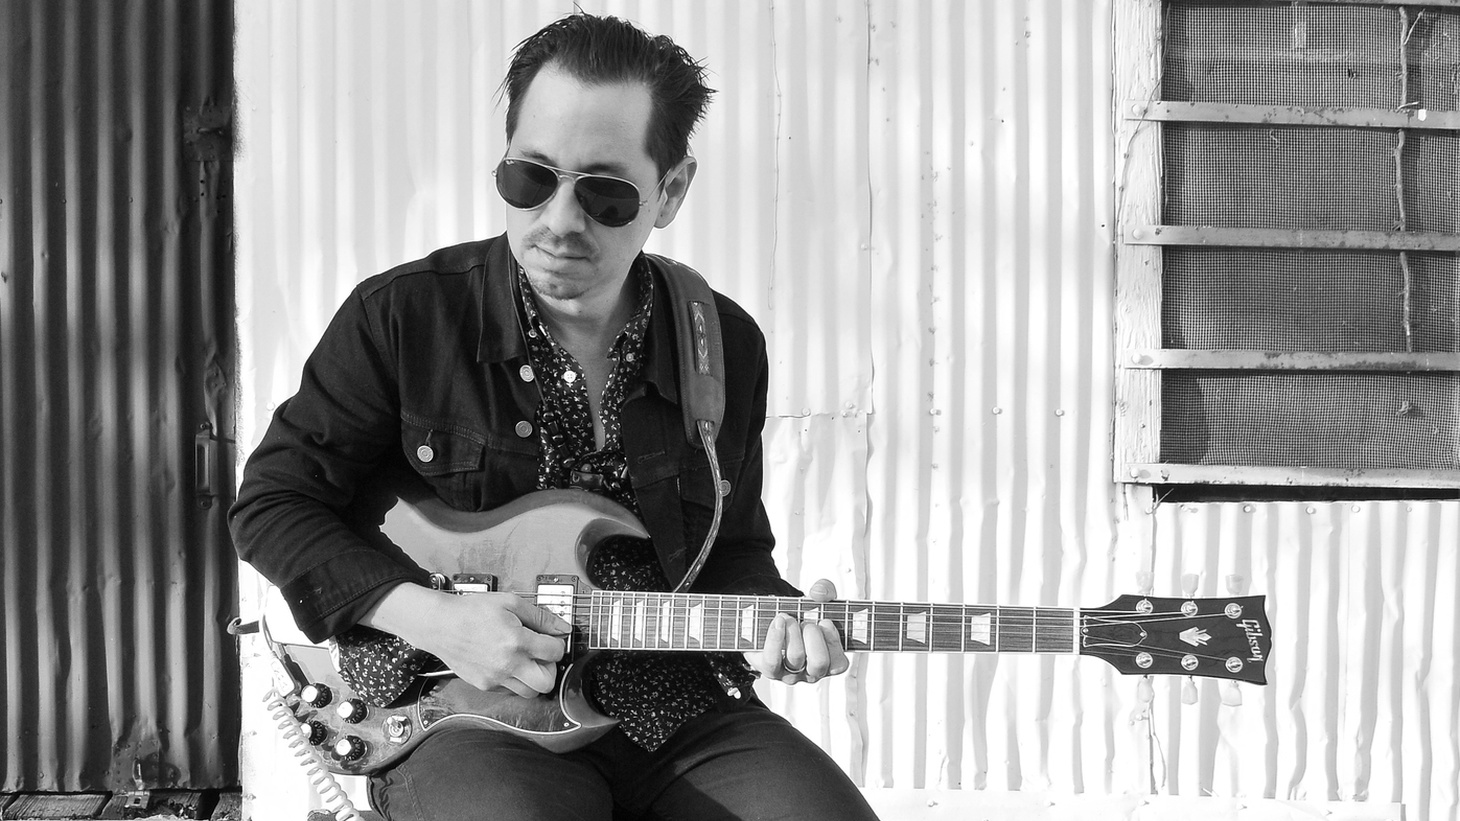 Ex-Grupo Fantasma member Adrian Quesada has been on the circuit with Brownout & Spanish Gold, and has backed a number of other talented artists, including Prince. His first true solo project as The Echocentricsgets a little help from his friends.